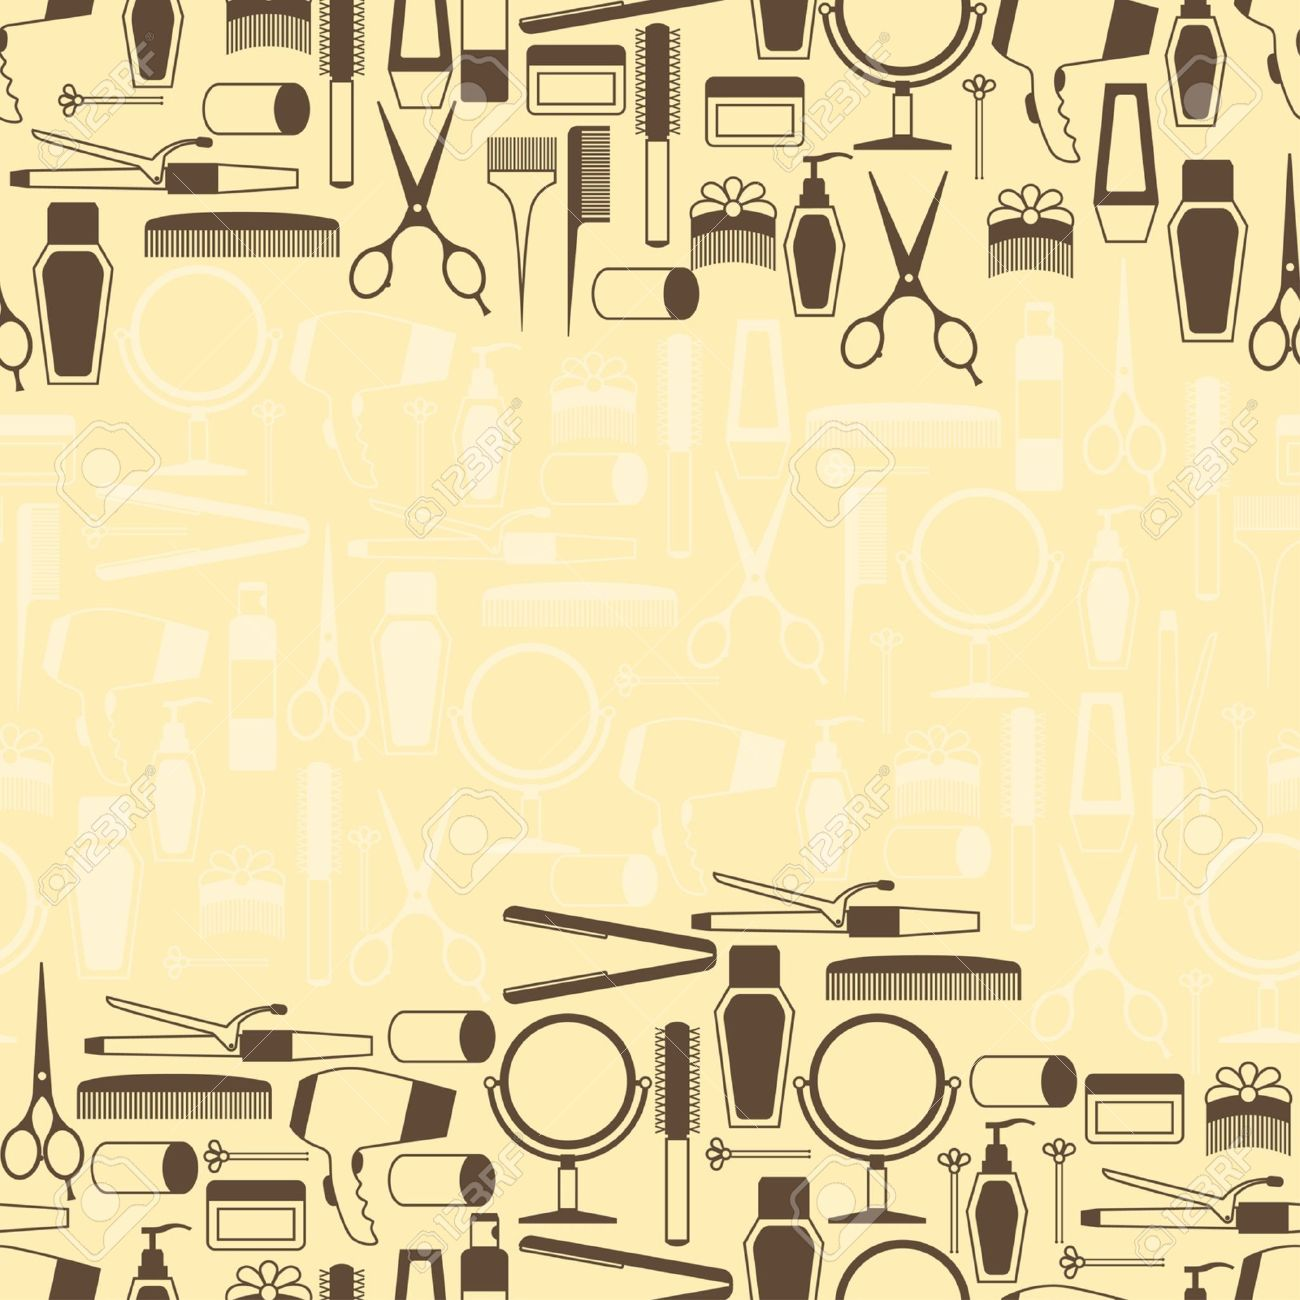 hairdressing tools seamless pattern in retro style royalty free